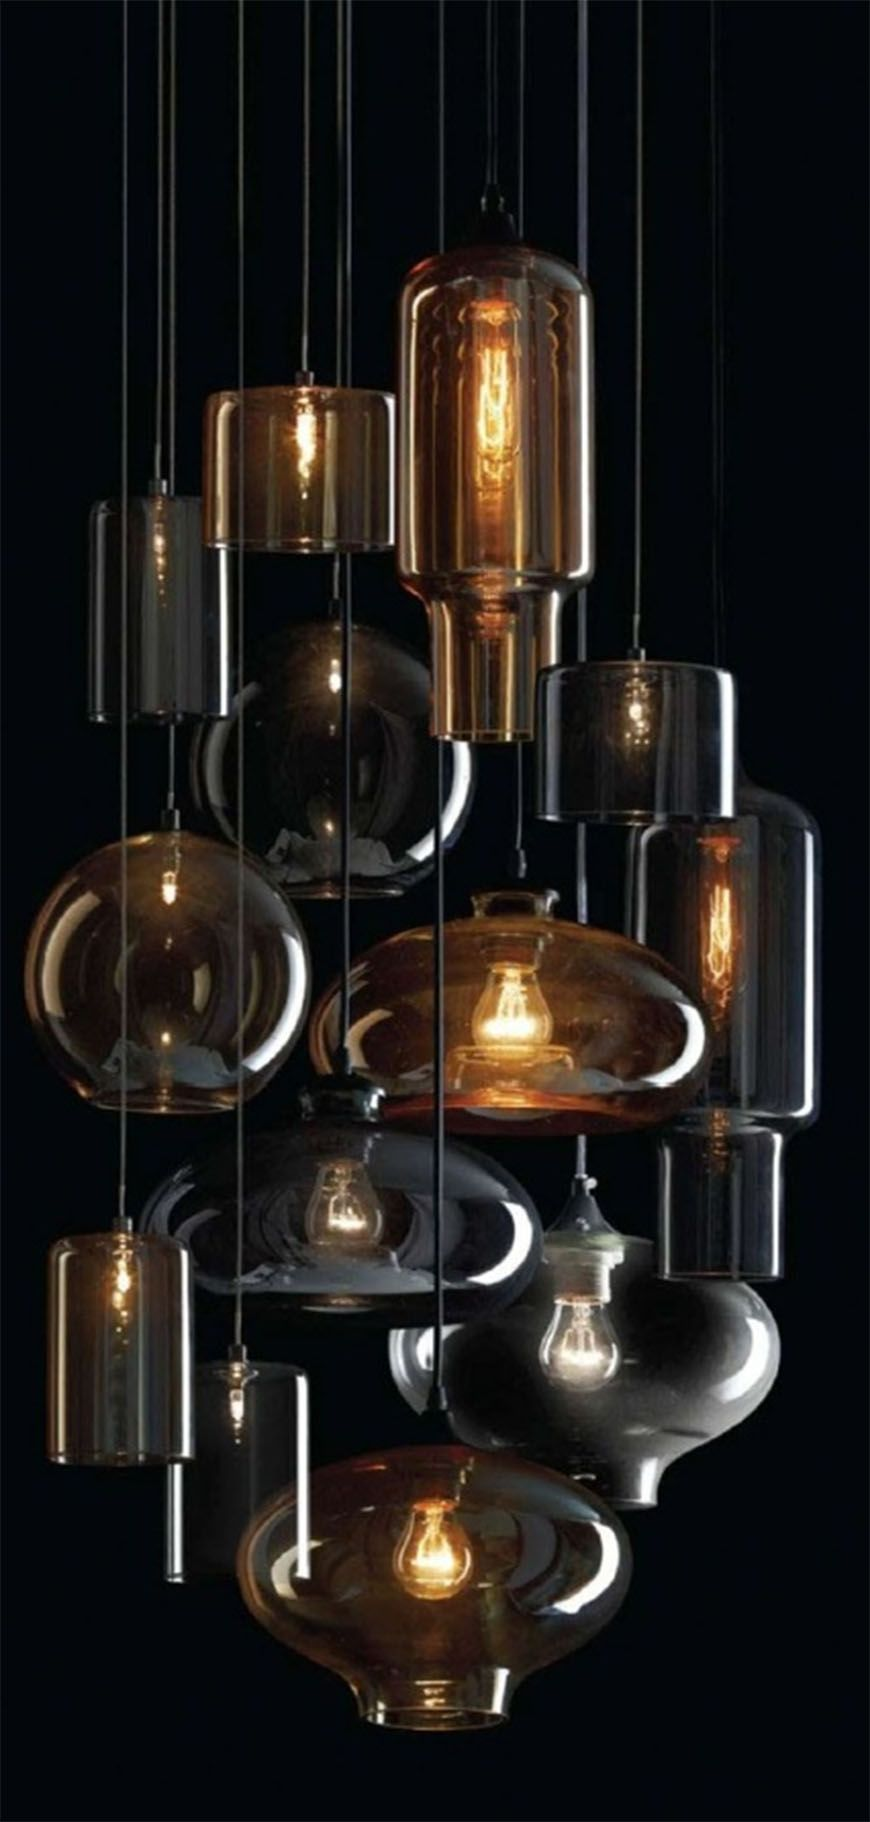 Top 5 interior design trends for modern home d cor in 2015 for Raumgestaltung 2015